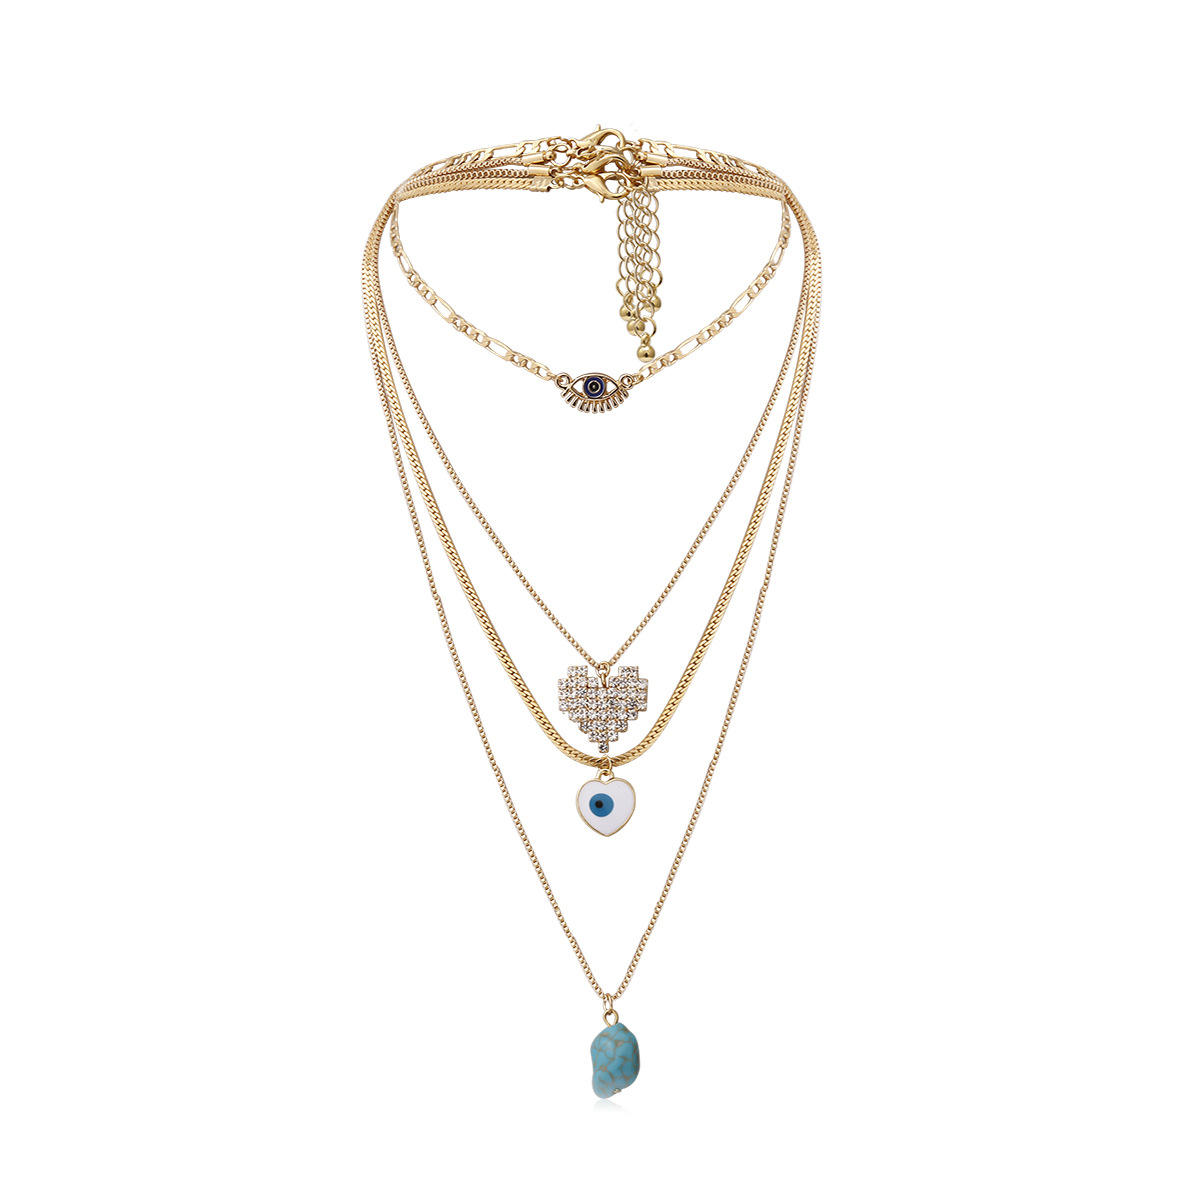 Vriua Fashion Multi Layer Vintage Verklaring Emaille Zirkoon Shiny Heart Shaped Crystal Olie Eye Turquoise Charm Choker <span class=keywords><strong>Ketting</strong></span>